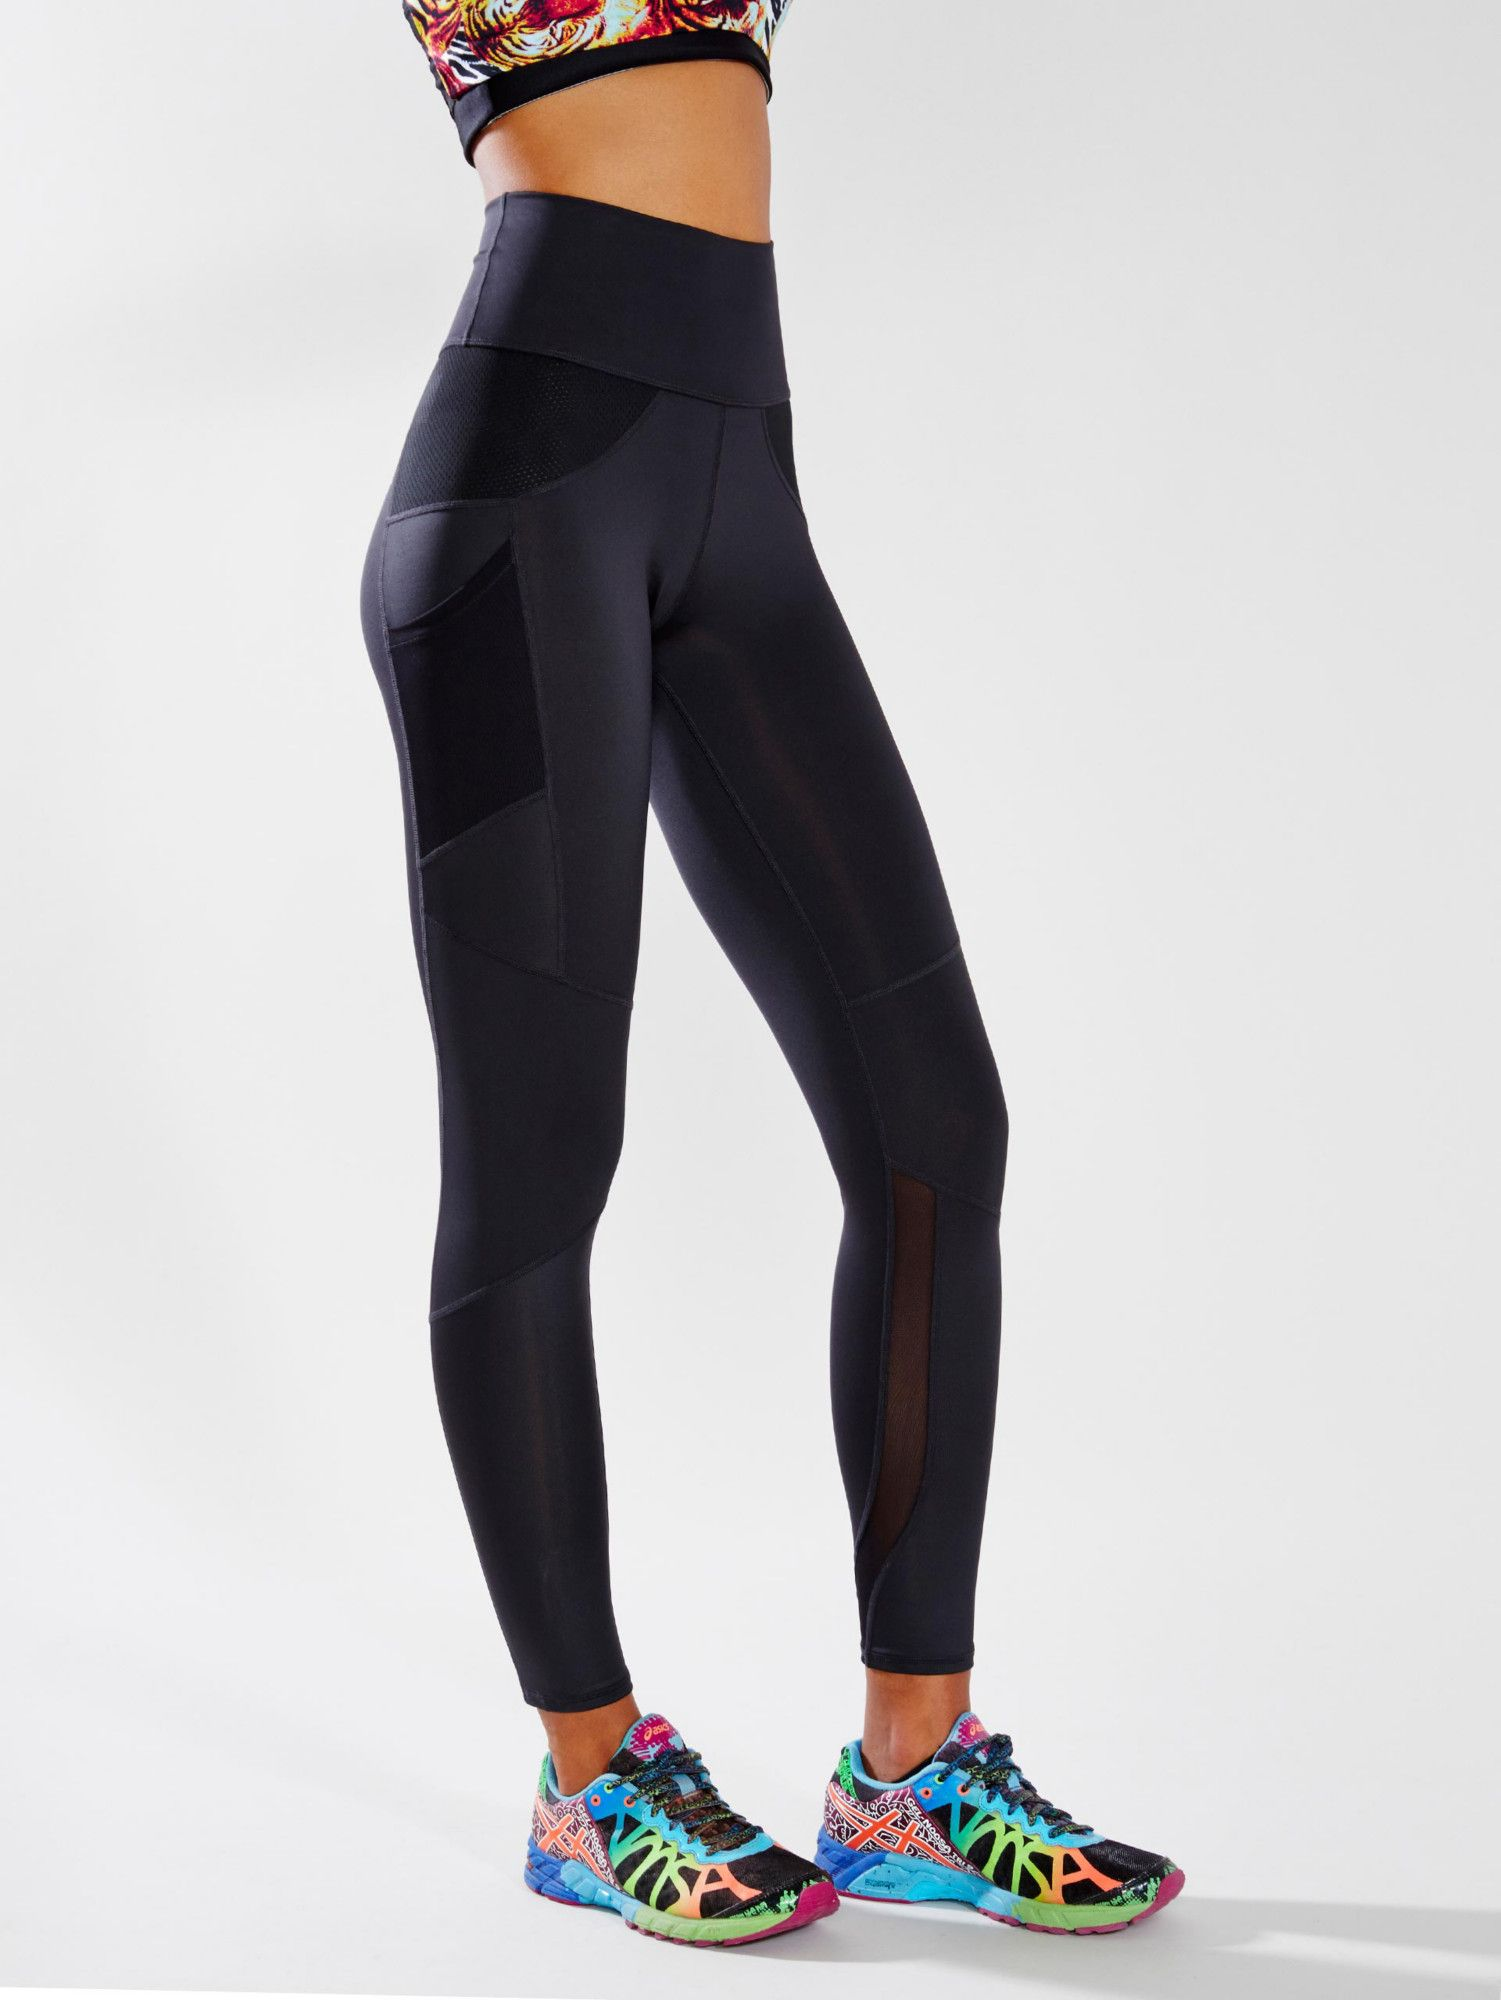 High Waisted Workout Leggings Nike - The Else